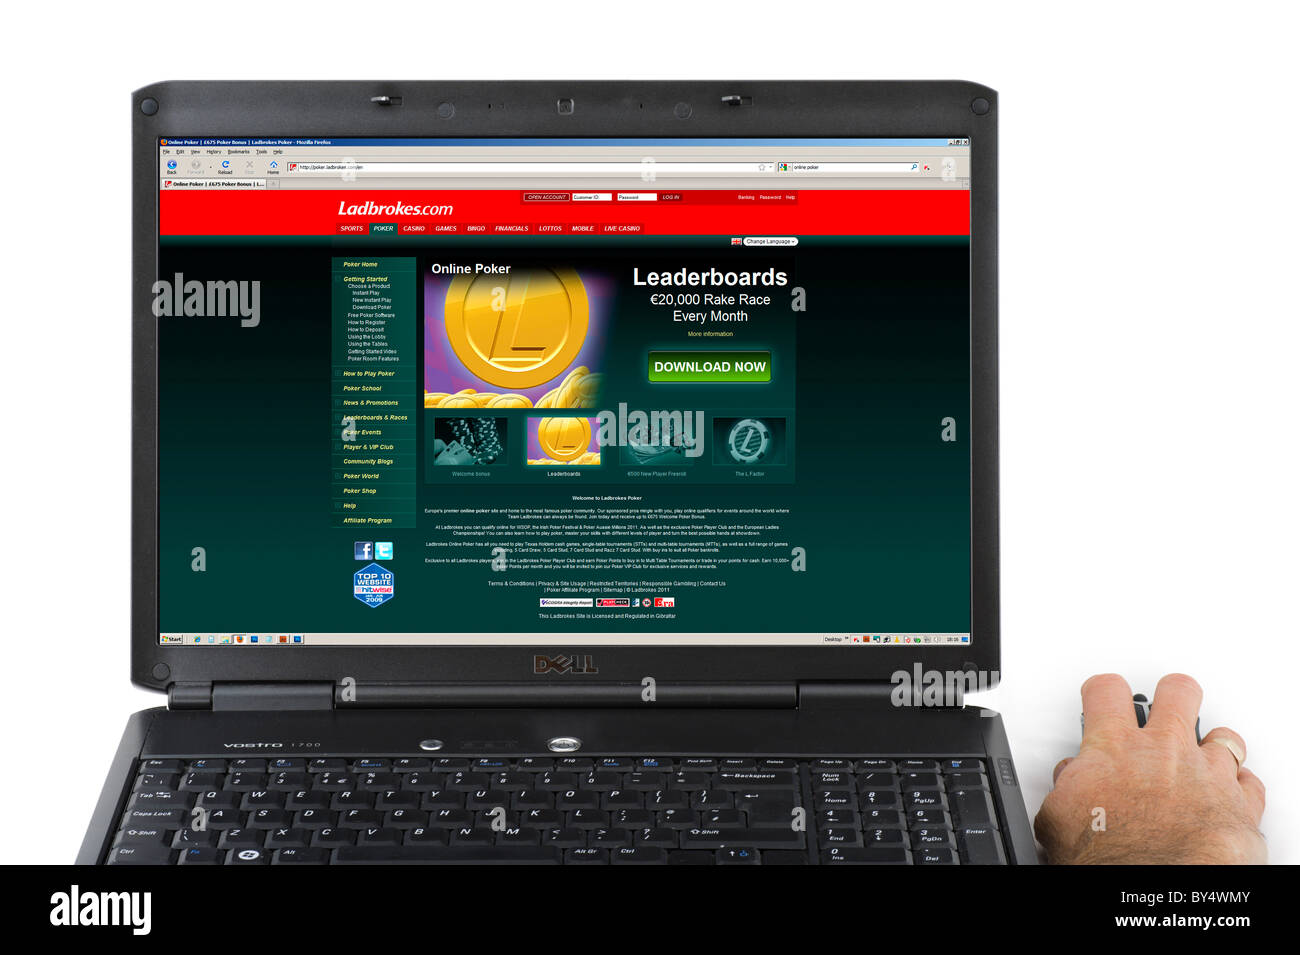 Playing online Poker with Ladbrokes bookmakers, UK - Stock Image